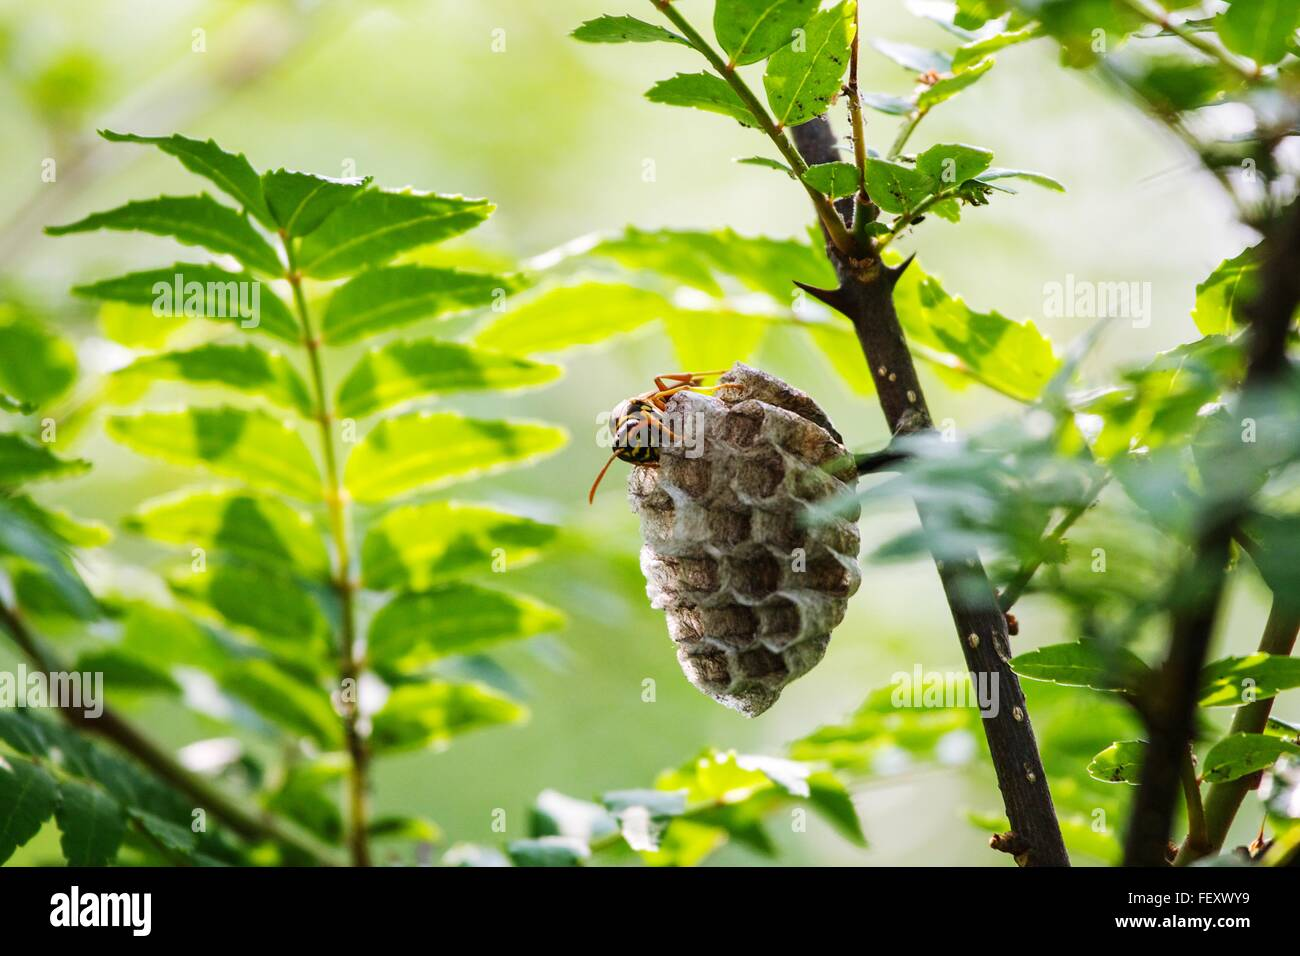 Close-Up Of Bee On Honeycomb - Stock Image